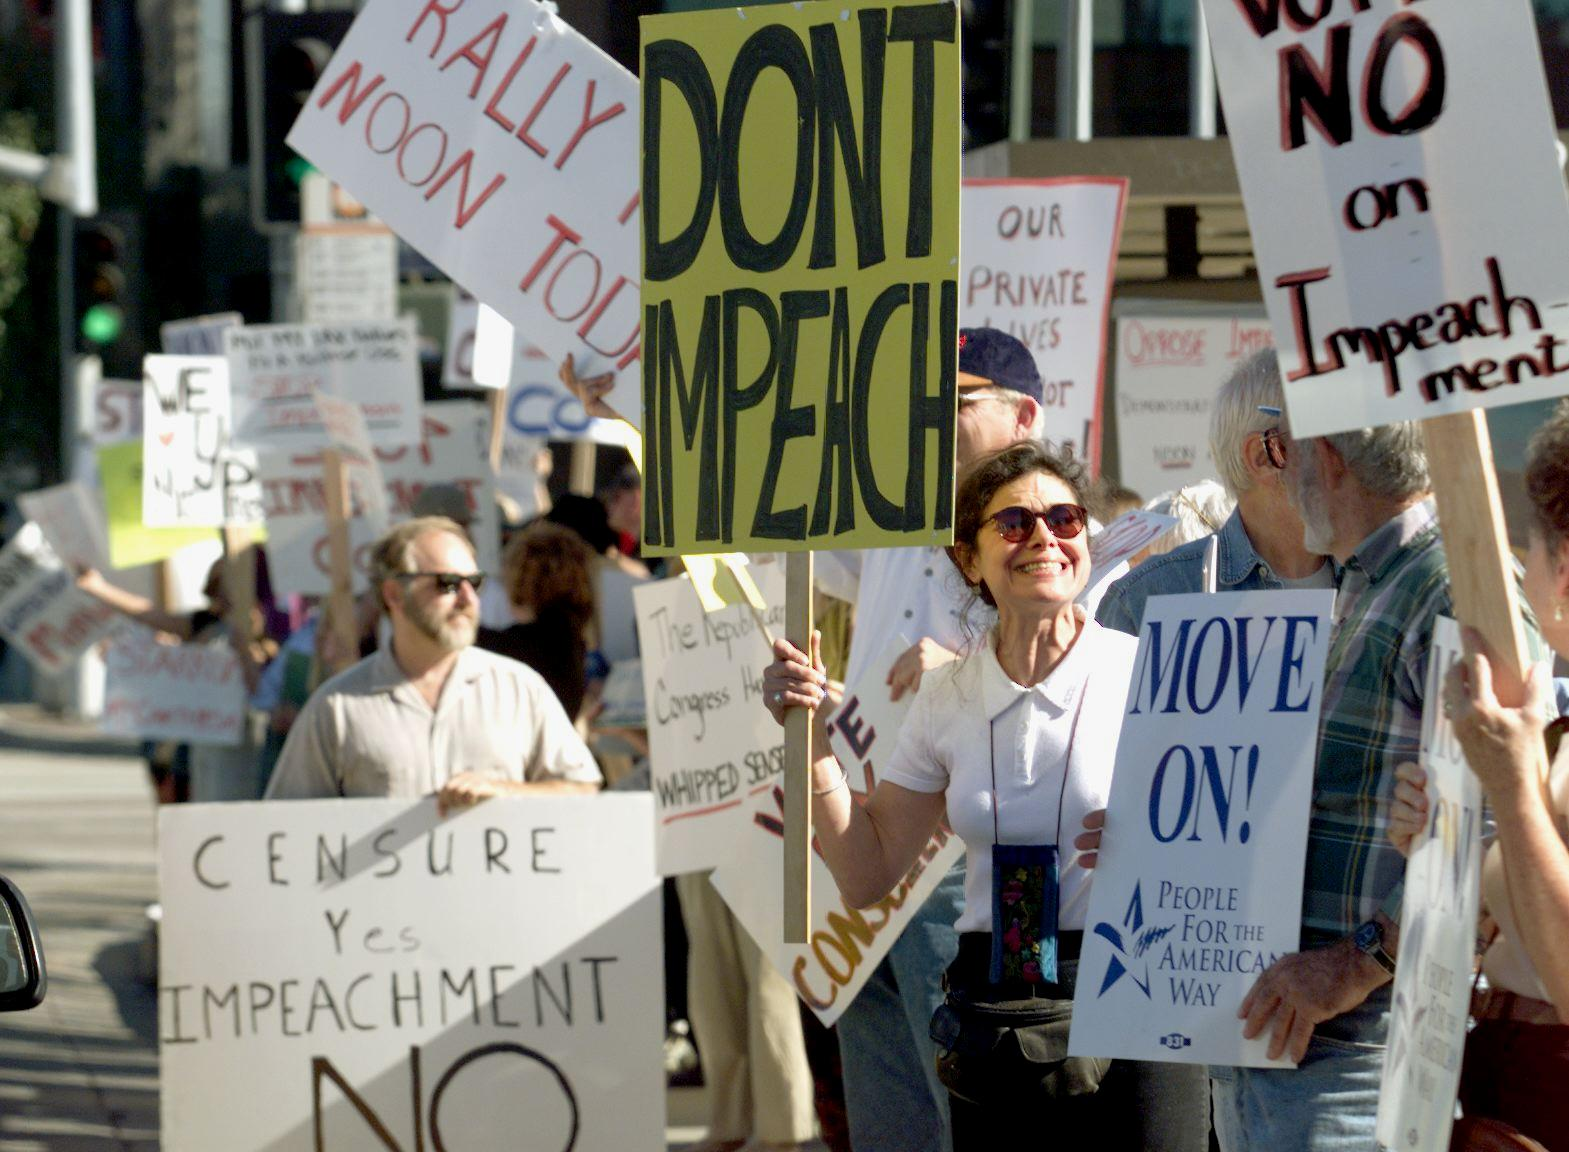 A group of people demonstrate to stop the impeachment process against US President Bill Clinton 16 December in front of the Federal Building in Westwood, outside of Los Angeles, CA. (Photo credit should read HECTOR MATA/AFP/Getty Images)